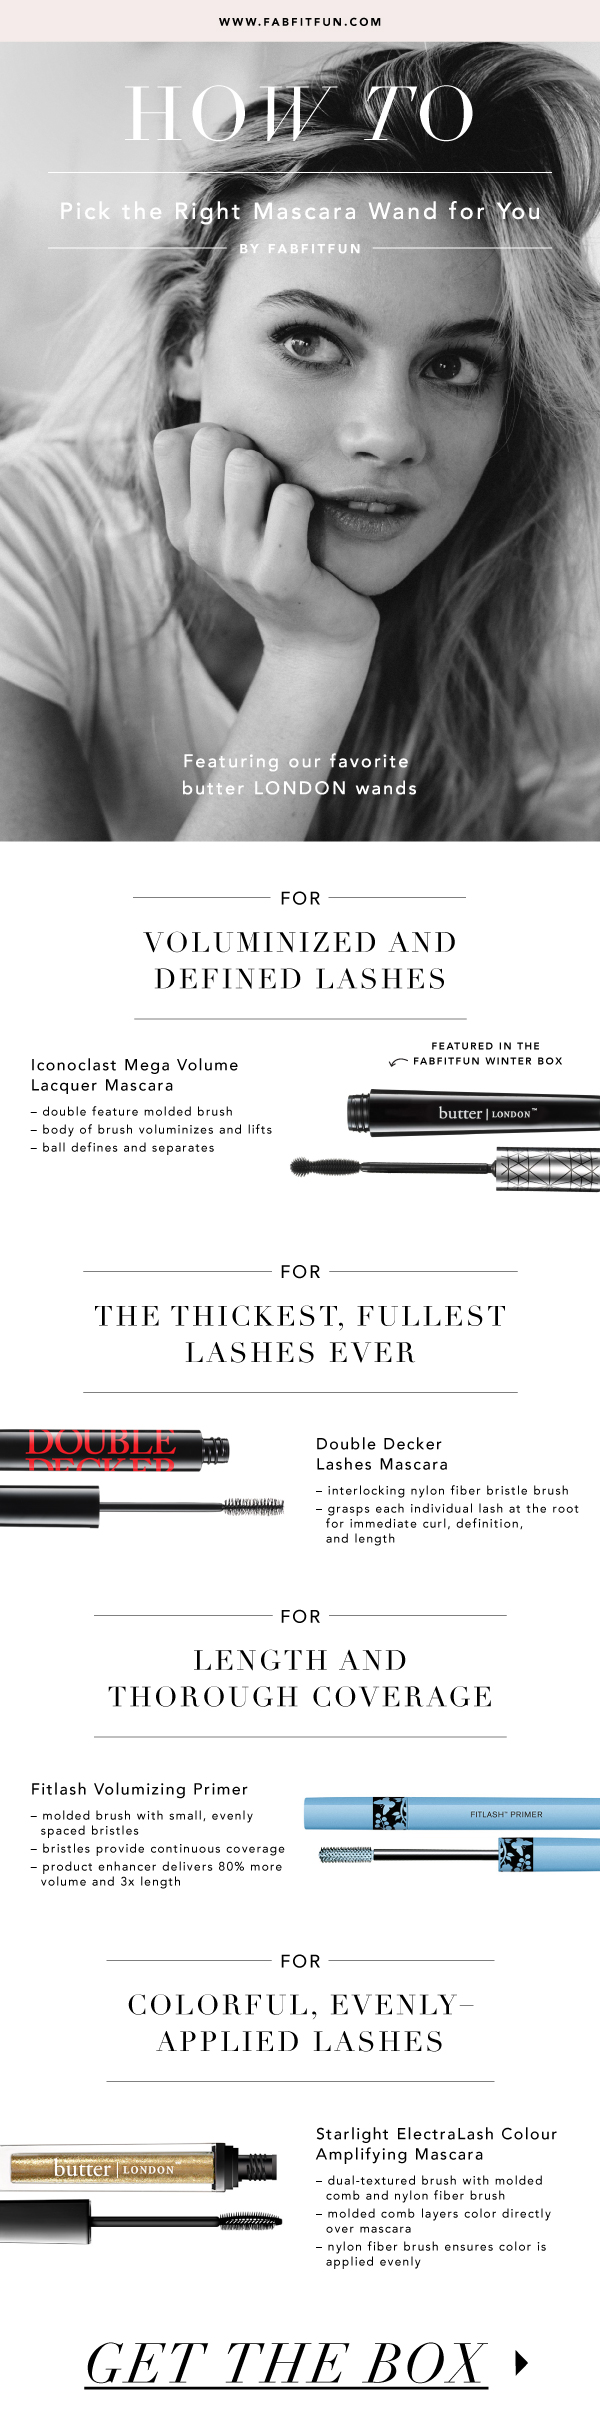 12-07-16-butter-london-mascara-infographic